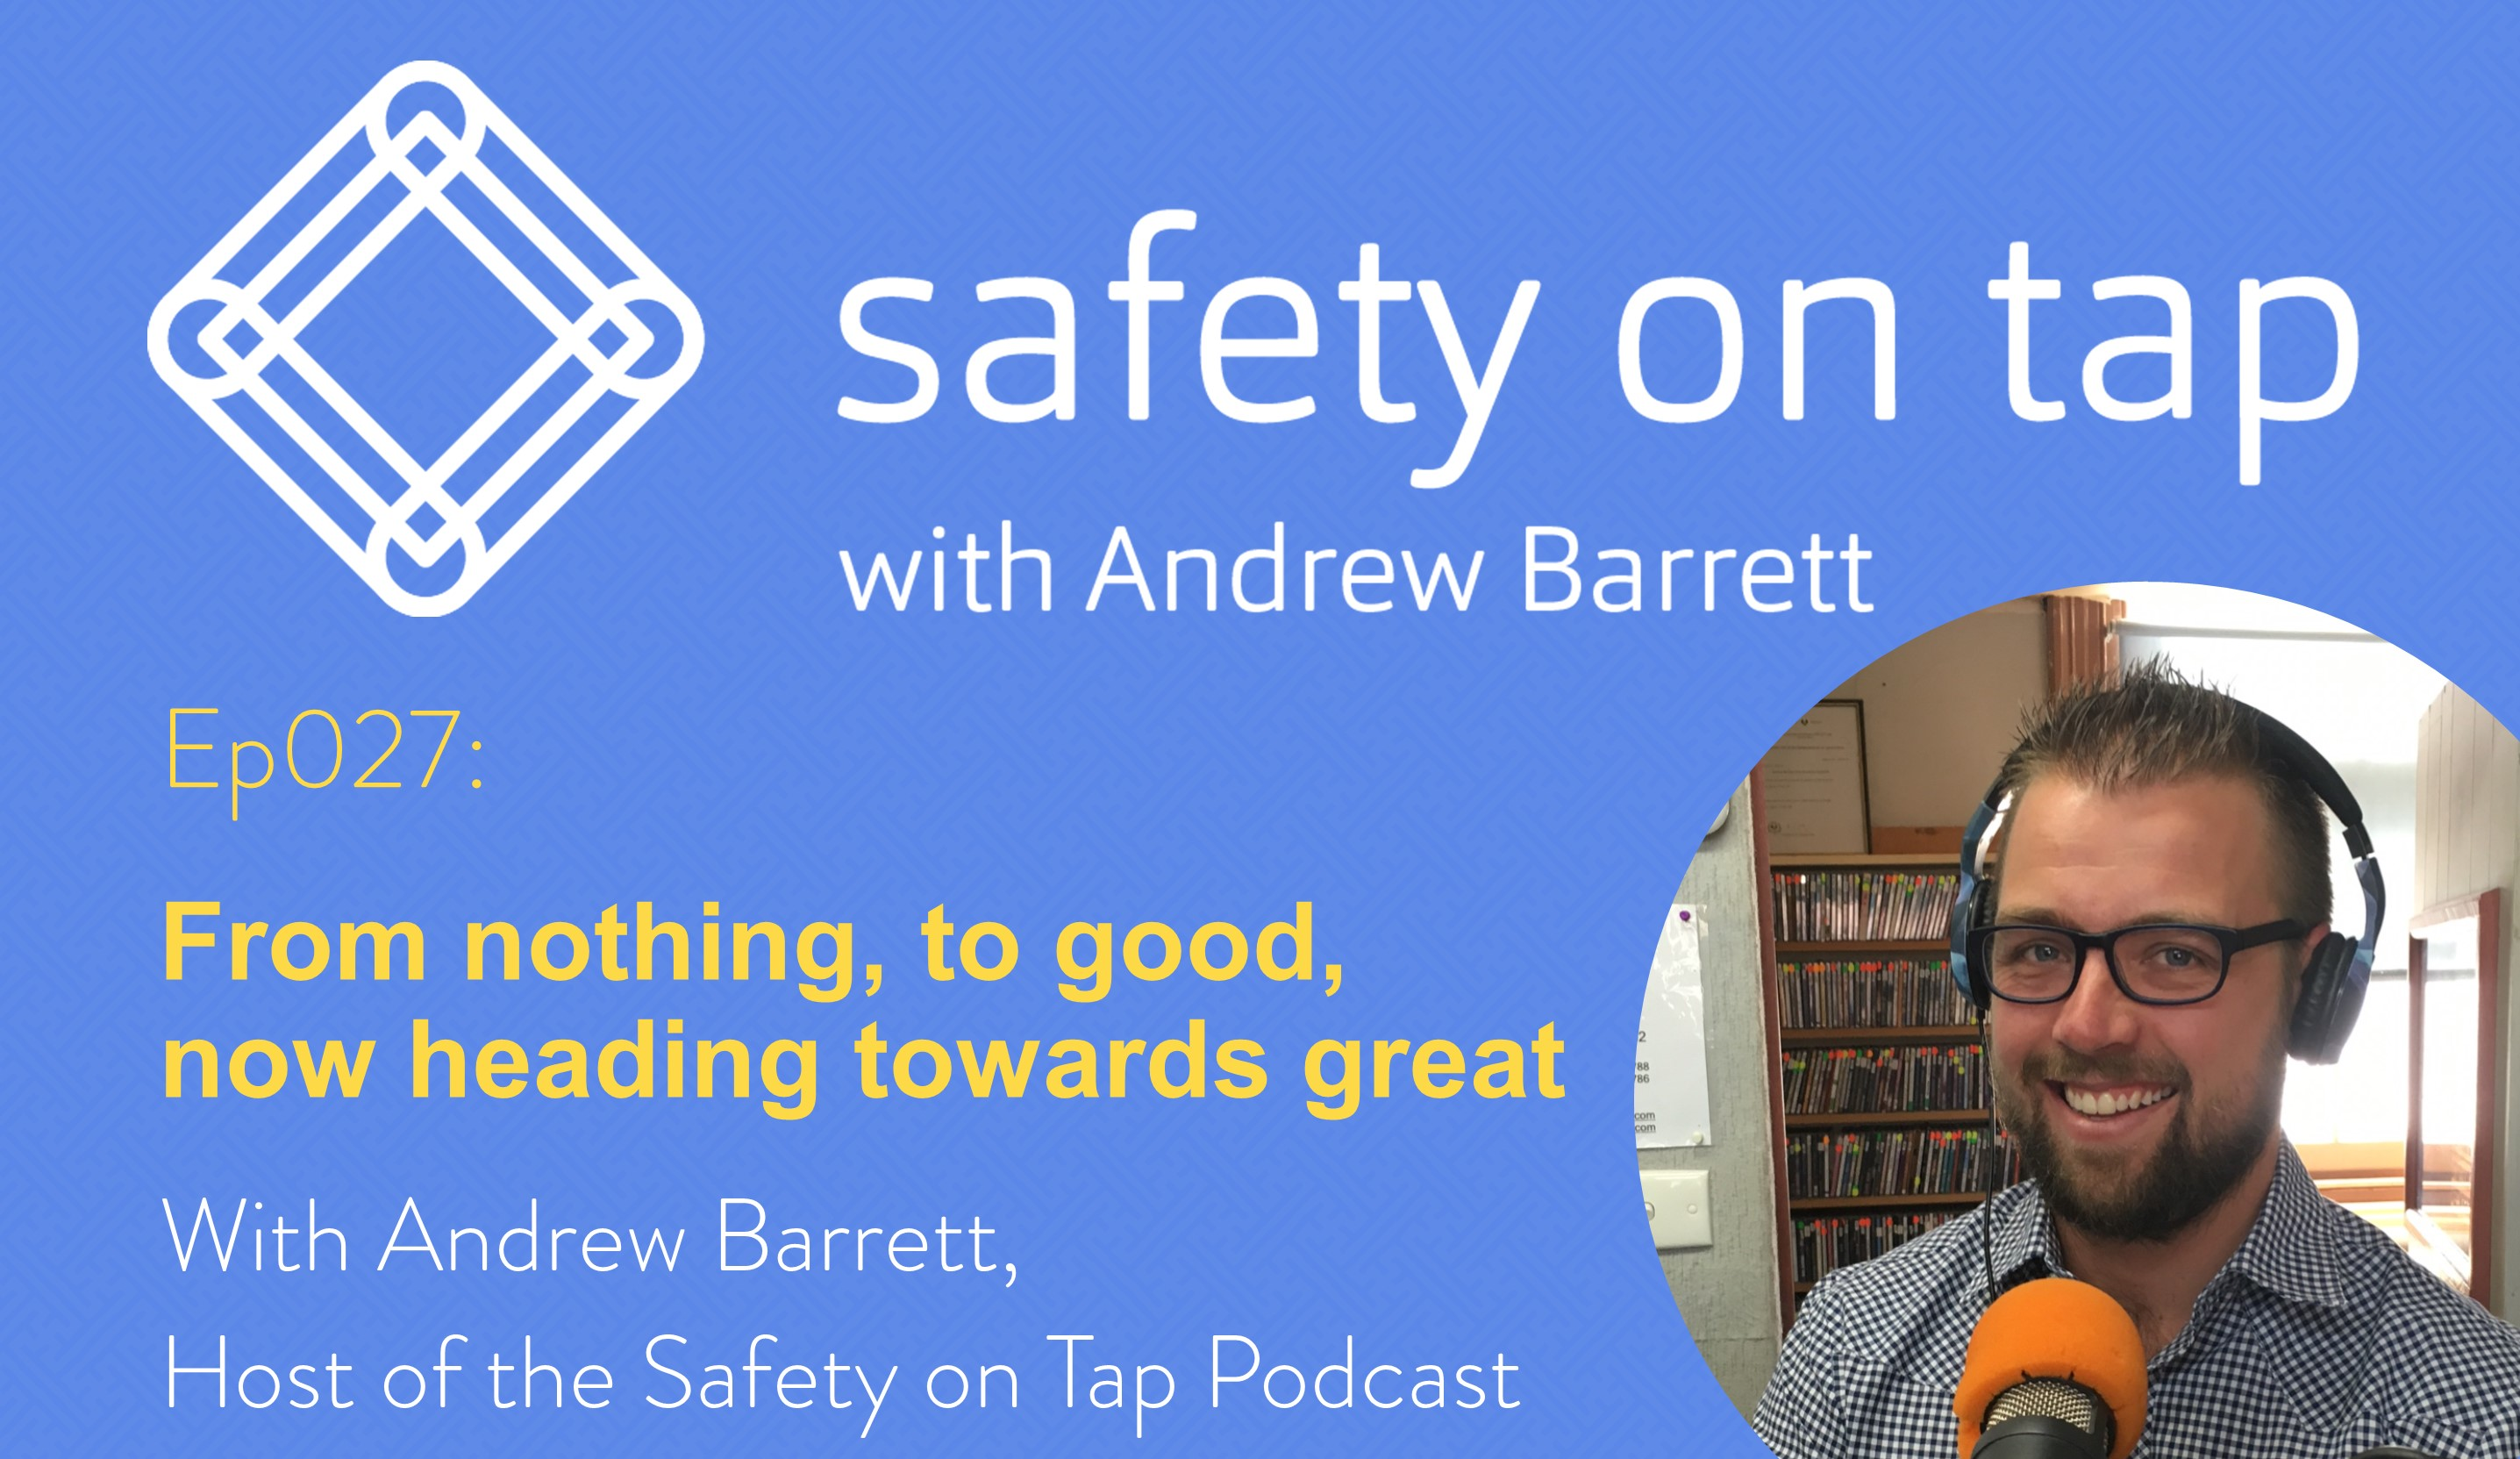 Ep027: From nothing, to good, now heading towards great.  With Andrew Barrett, Host of the Safety on Tap Podcast